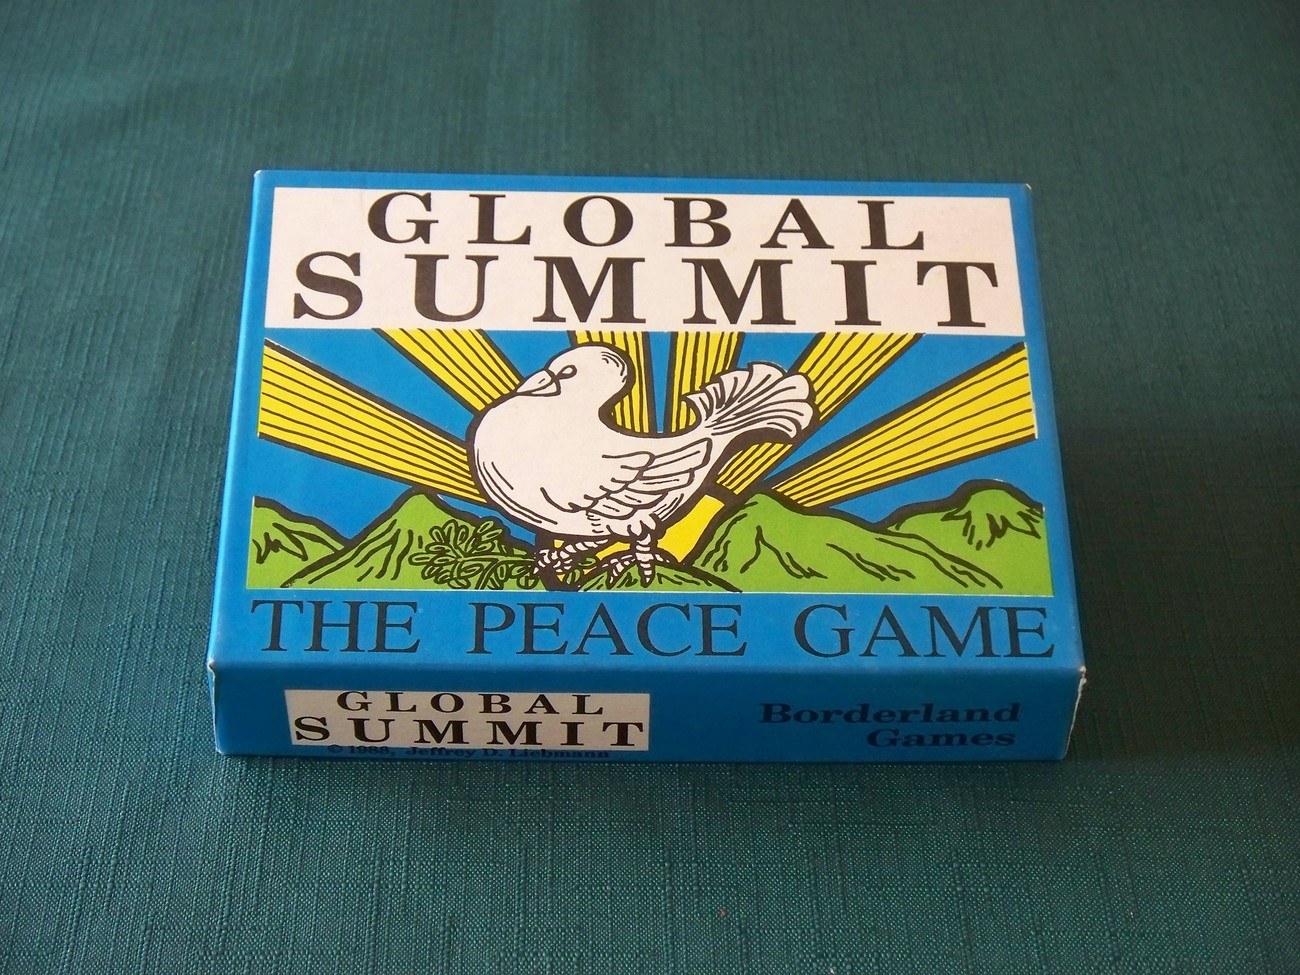 Primary image for Global Summit: The Peace Game Borderland Games 1988 VGC